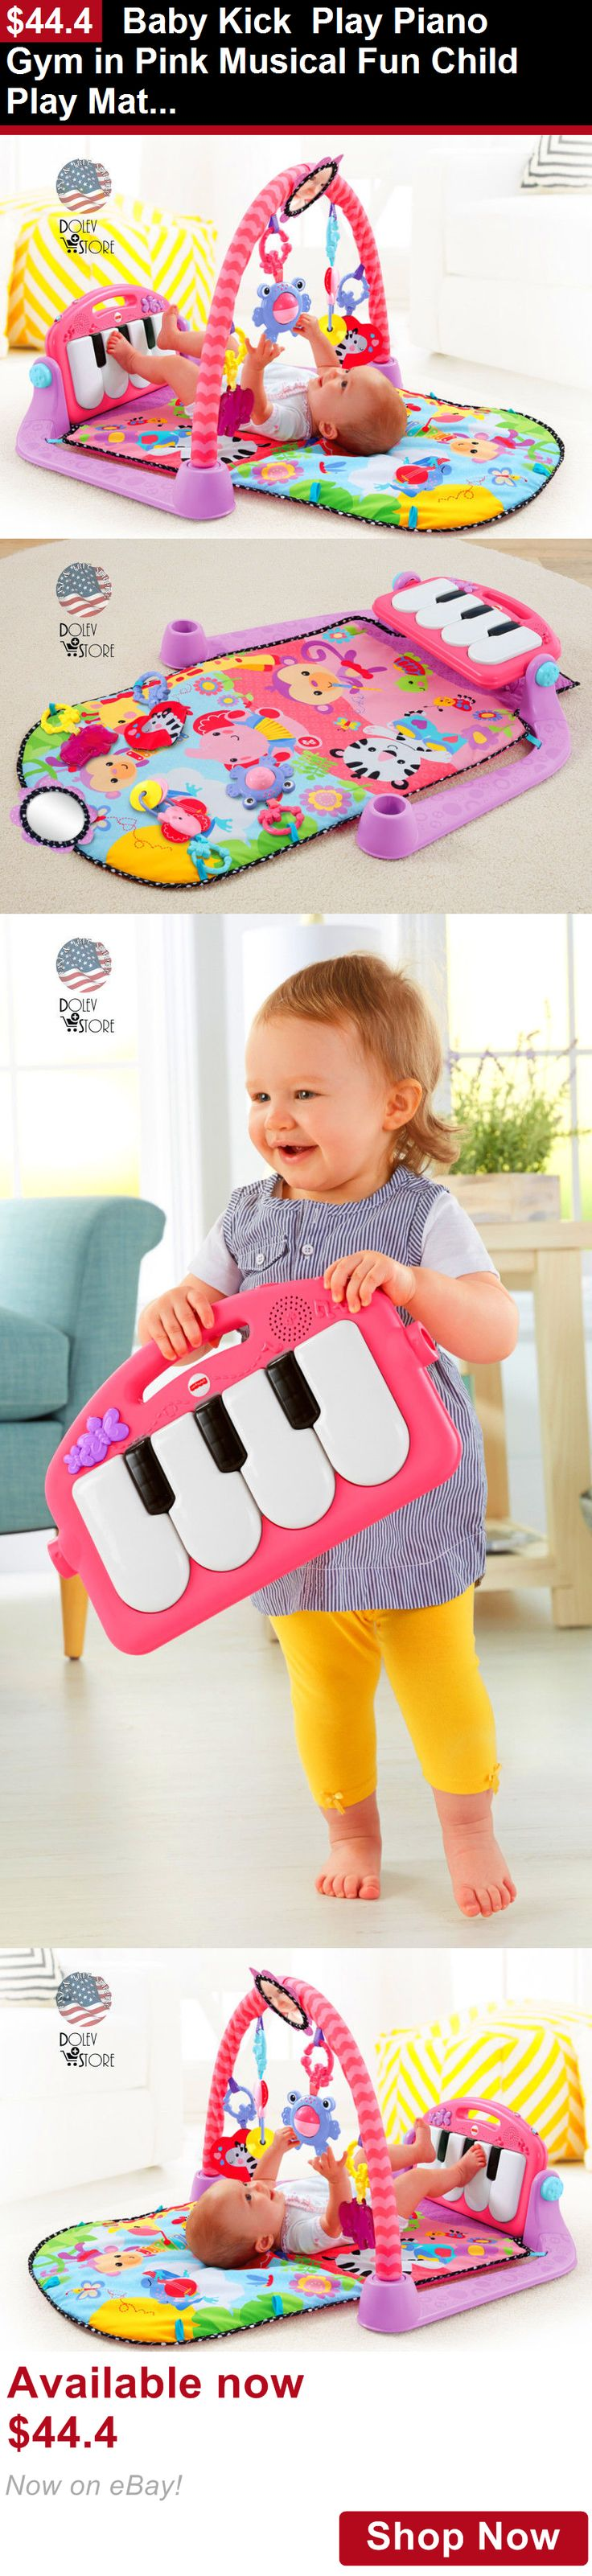 Baby gyms and play mats: Baby Kick Play Piano Gym In Pink Musical Fun Child Play Mat Overhead Toys New BUY IT NOW ONLY: $44.4